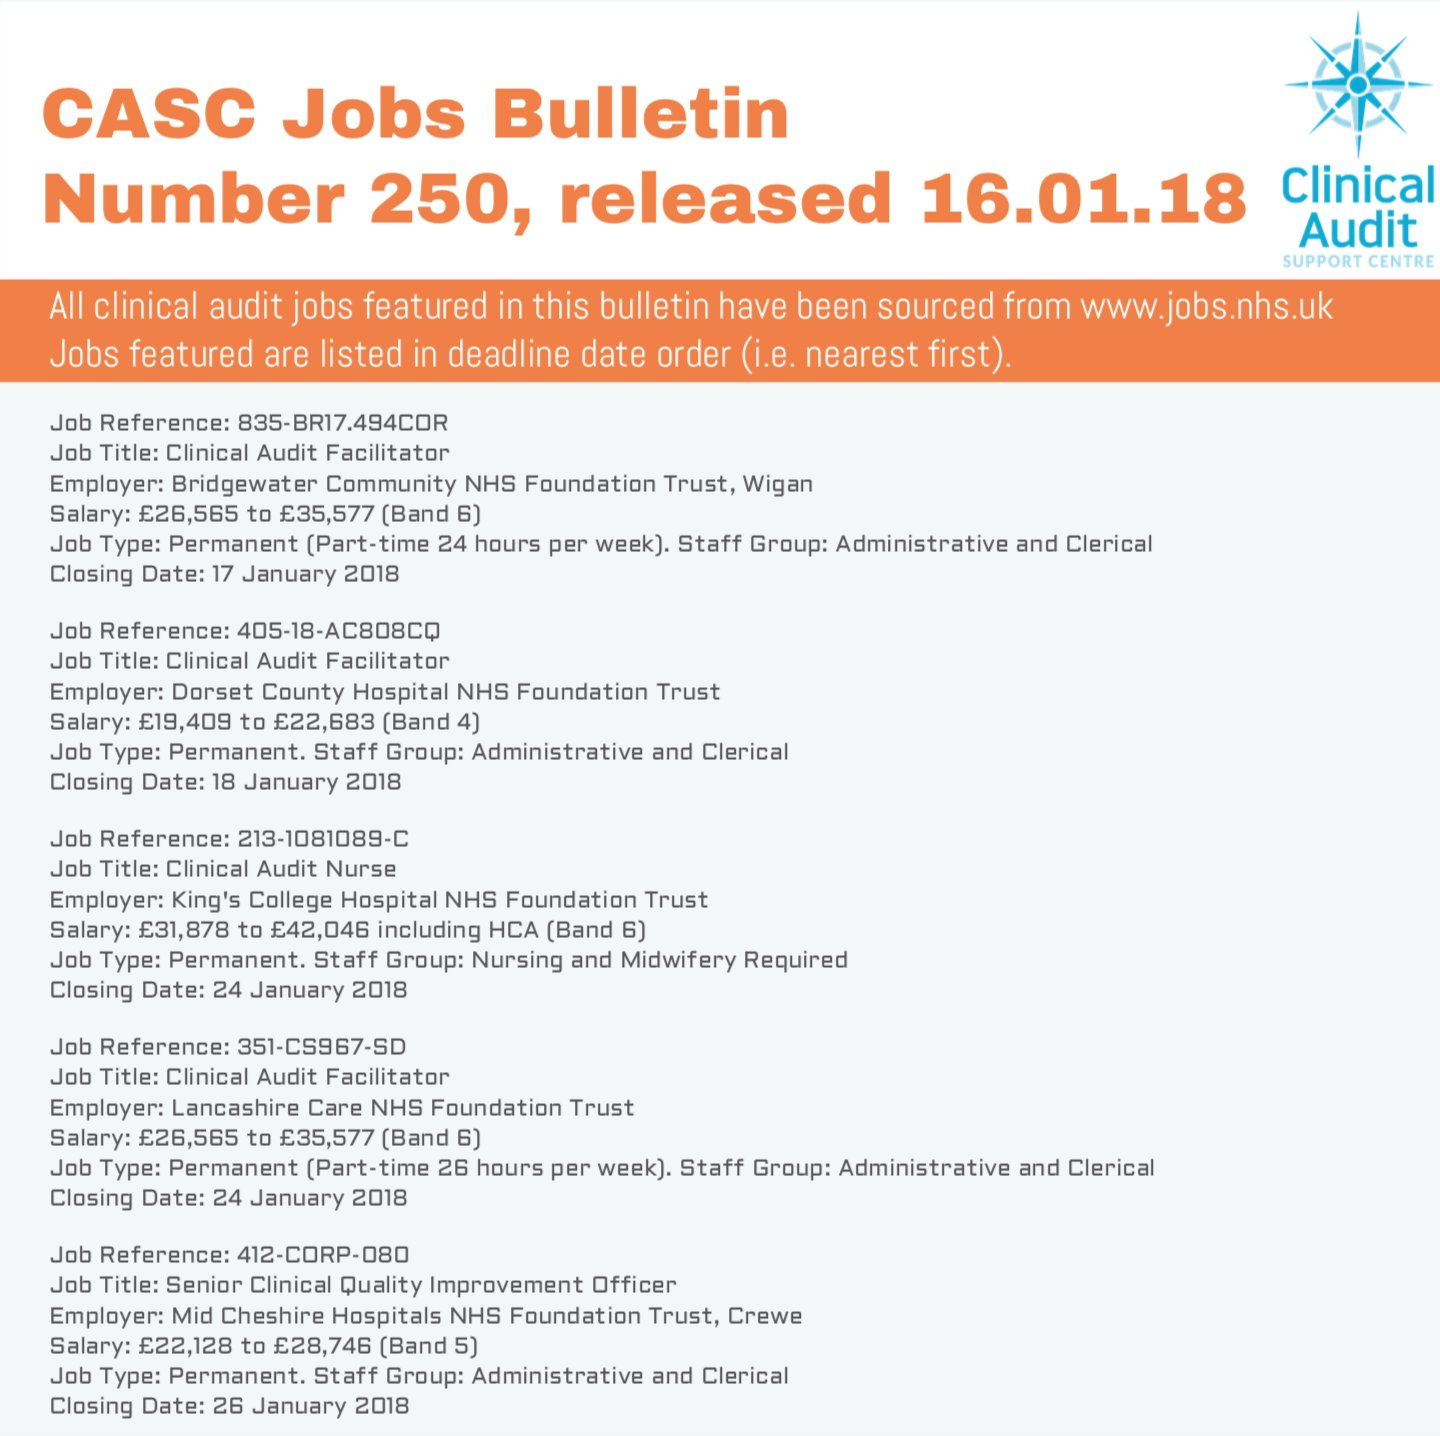 CASC Leicester on Twitter: